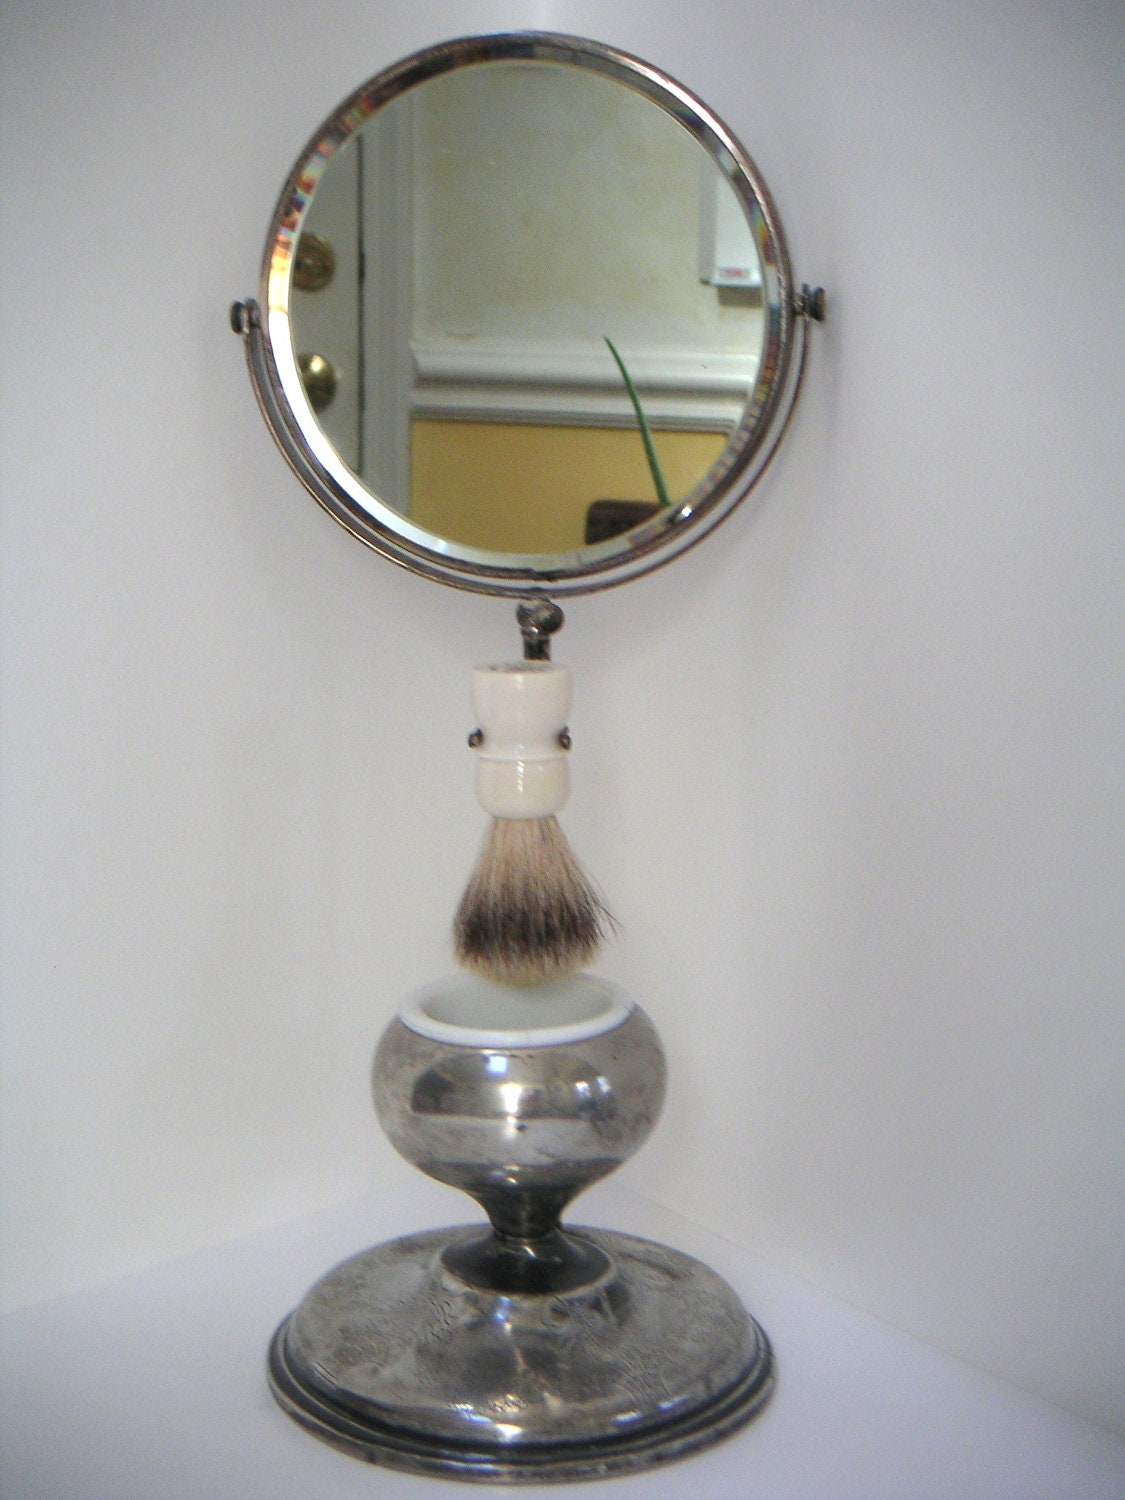 Vintage shaving mirror with shaving mug and brush for Shaving mirror